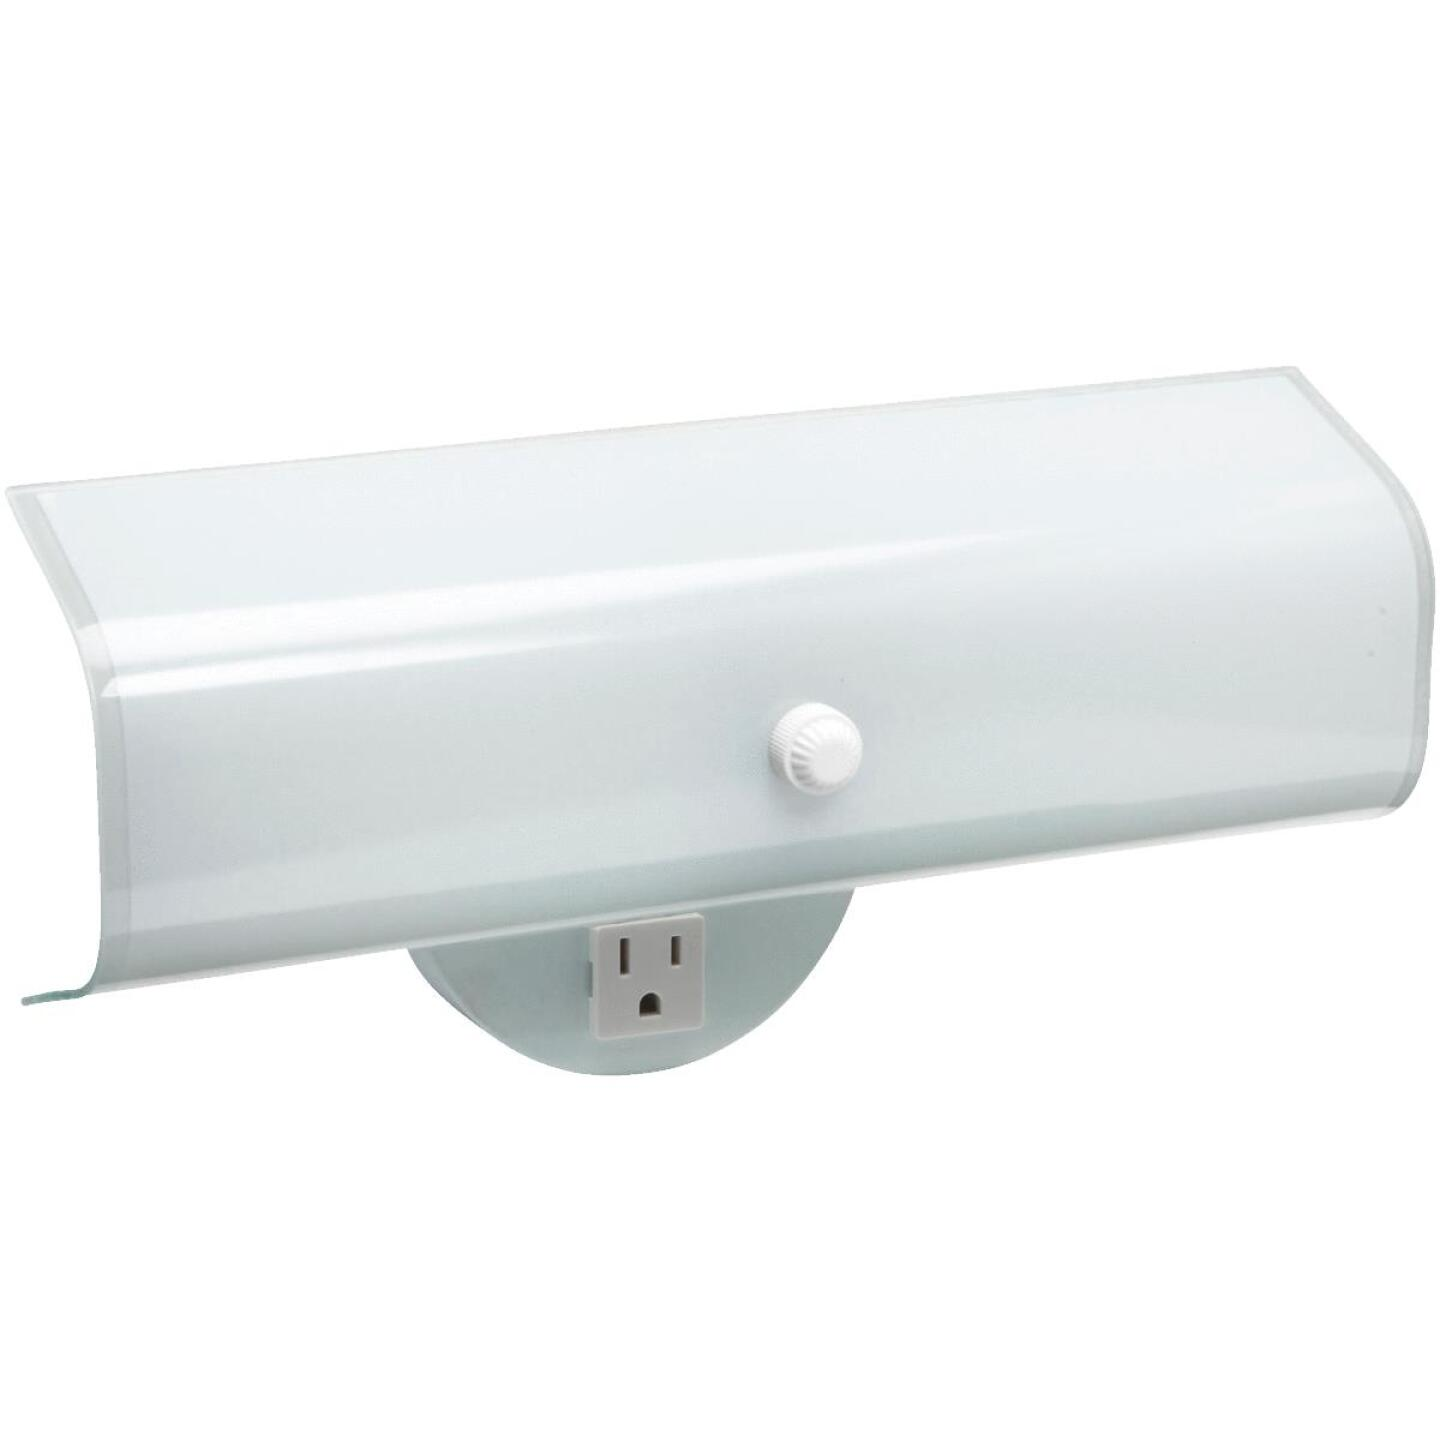 Home Impressions 2-Bulb White Wall Light Fixture Image 1